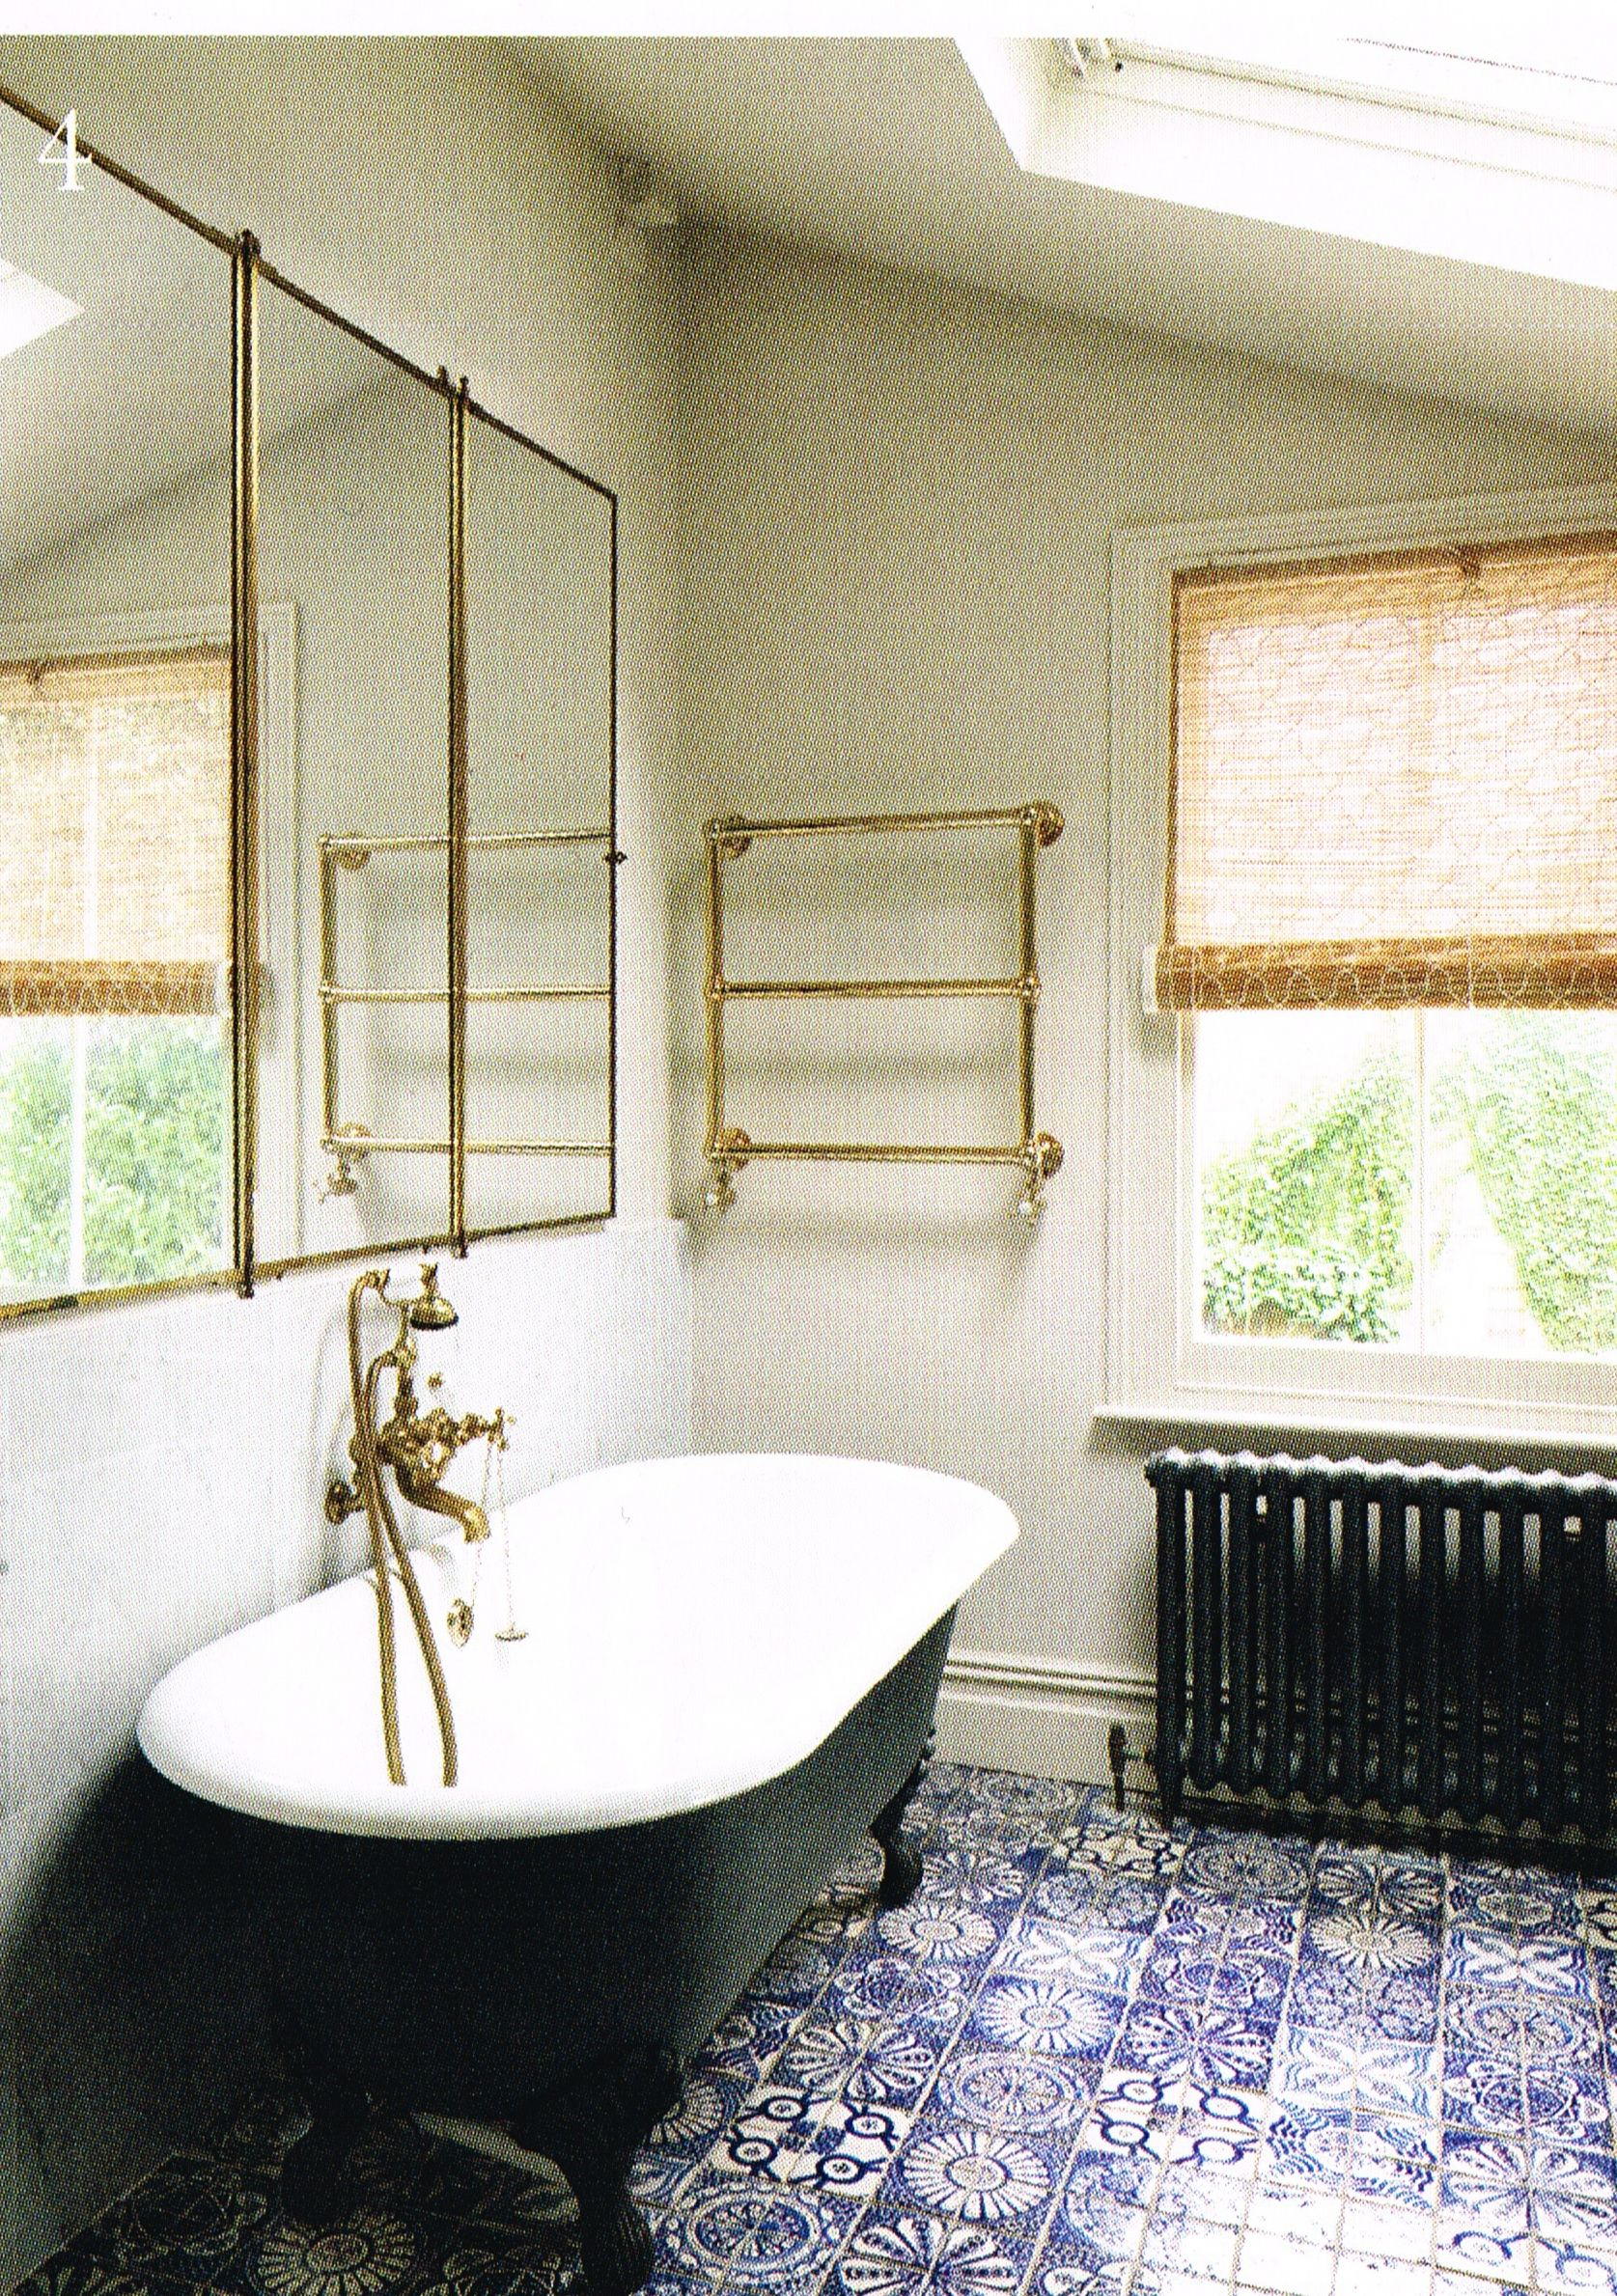 Bathroom in house in London, E9. Vintage Brot triptych mirror ...